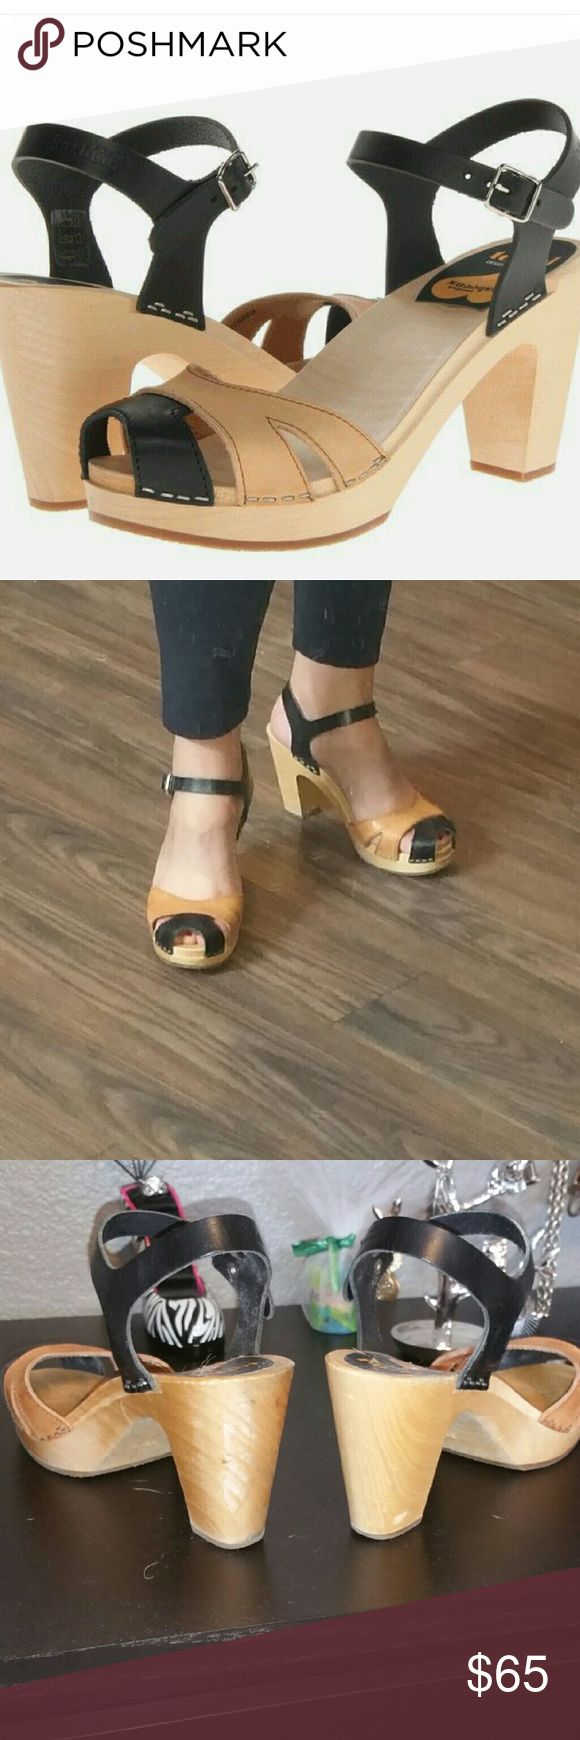 """Swedish Hasbeens Suzanne black and tan high heel Heel height 3 1/2"""", European size 38. Fits 7.5-8 Swedish Hasbeens Shoes Mules & Clogs"""